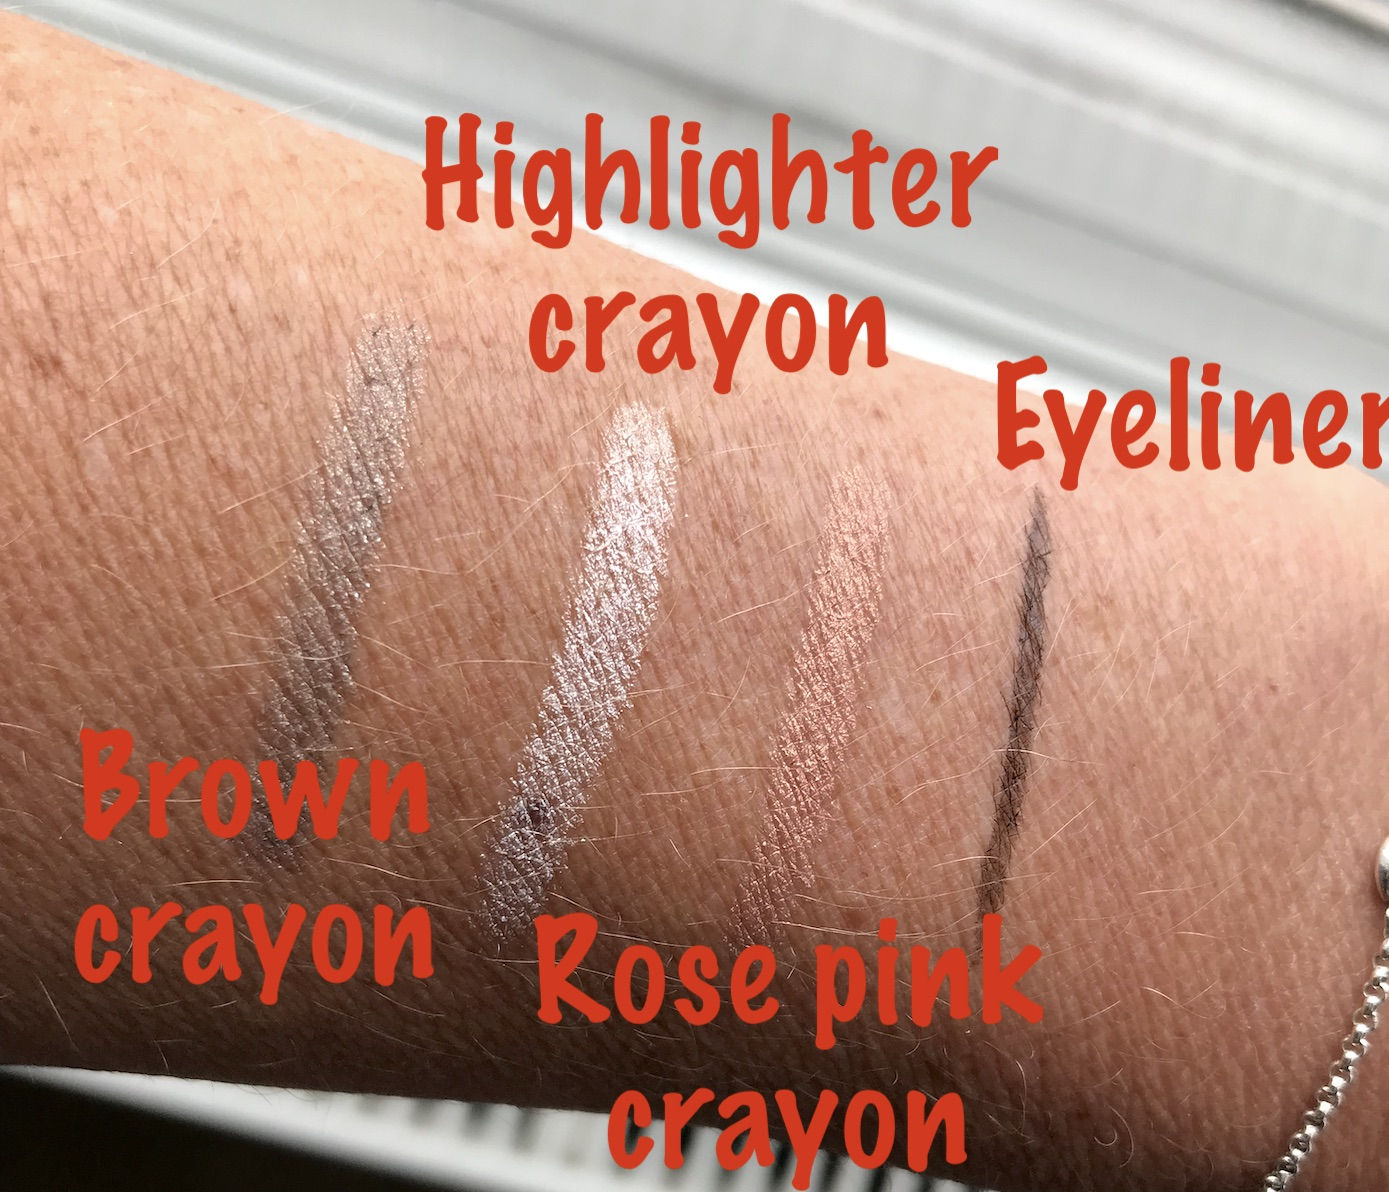 TED BAKER ALL EYES ON TED crayon.jpg